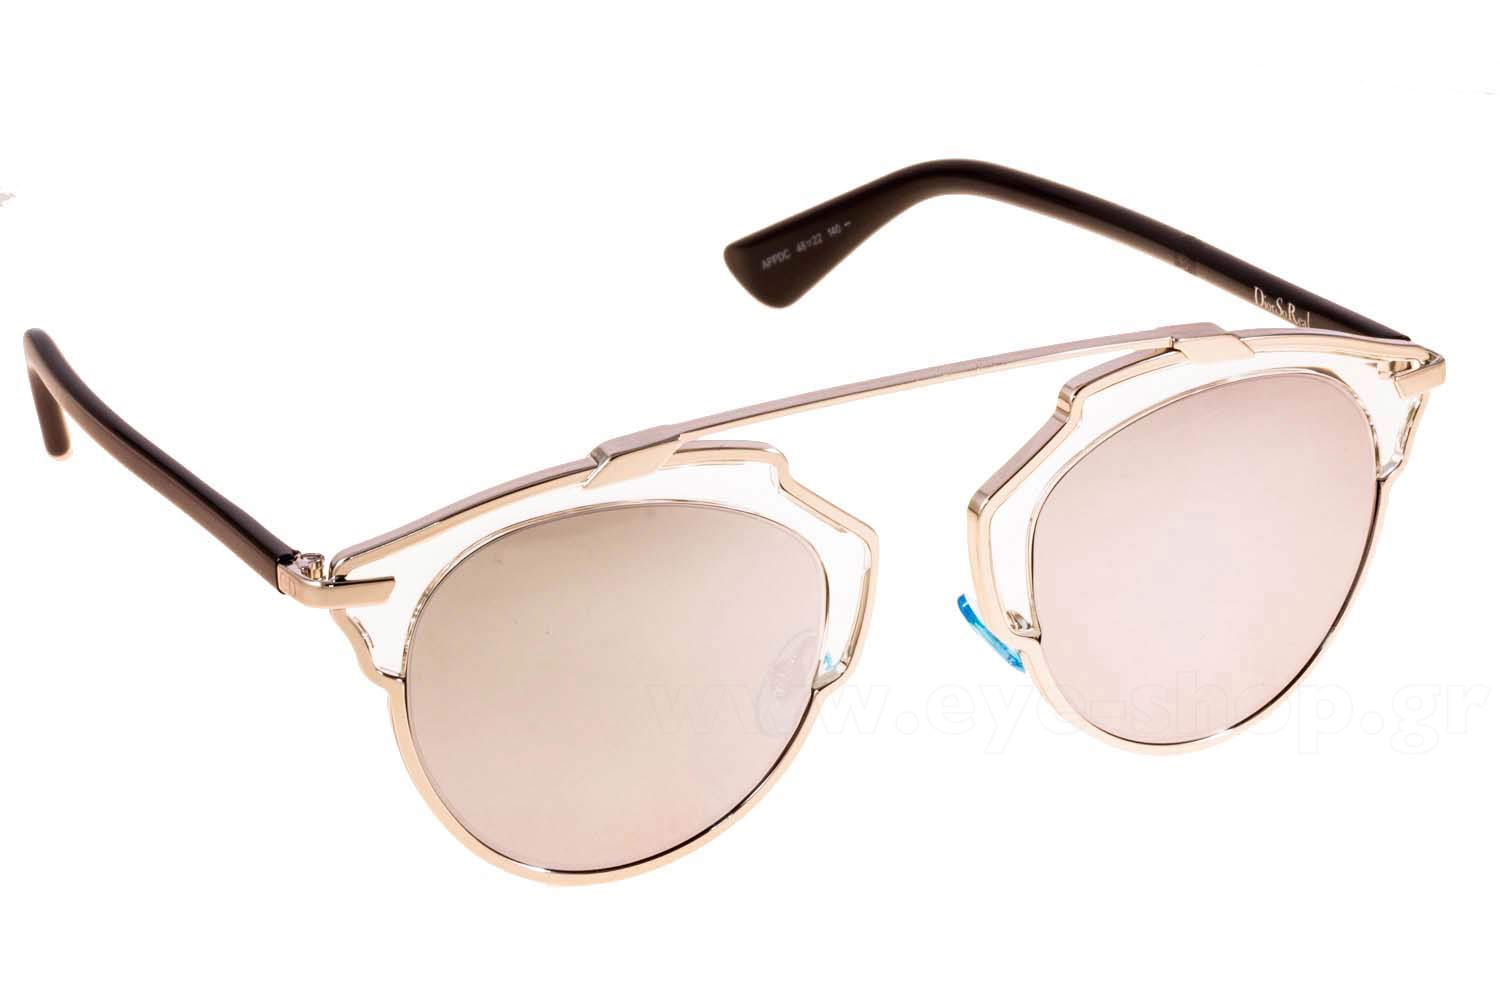 Enlarge Colors Discontinued. Sunglasses Christian Dior SO REAL APP-DC 582428dcb694